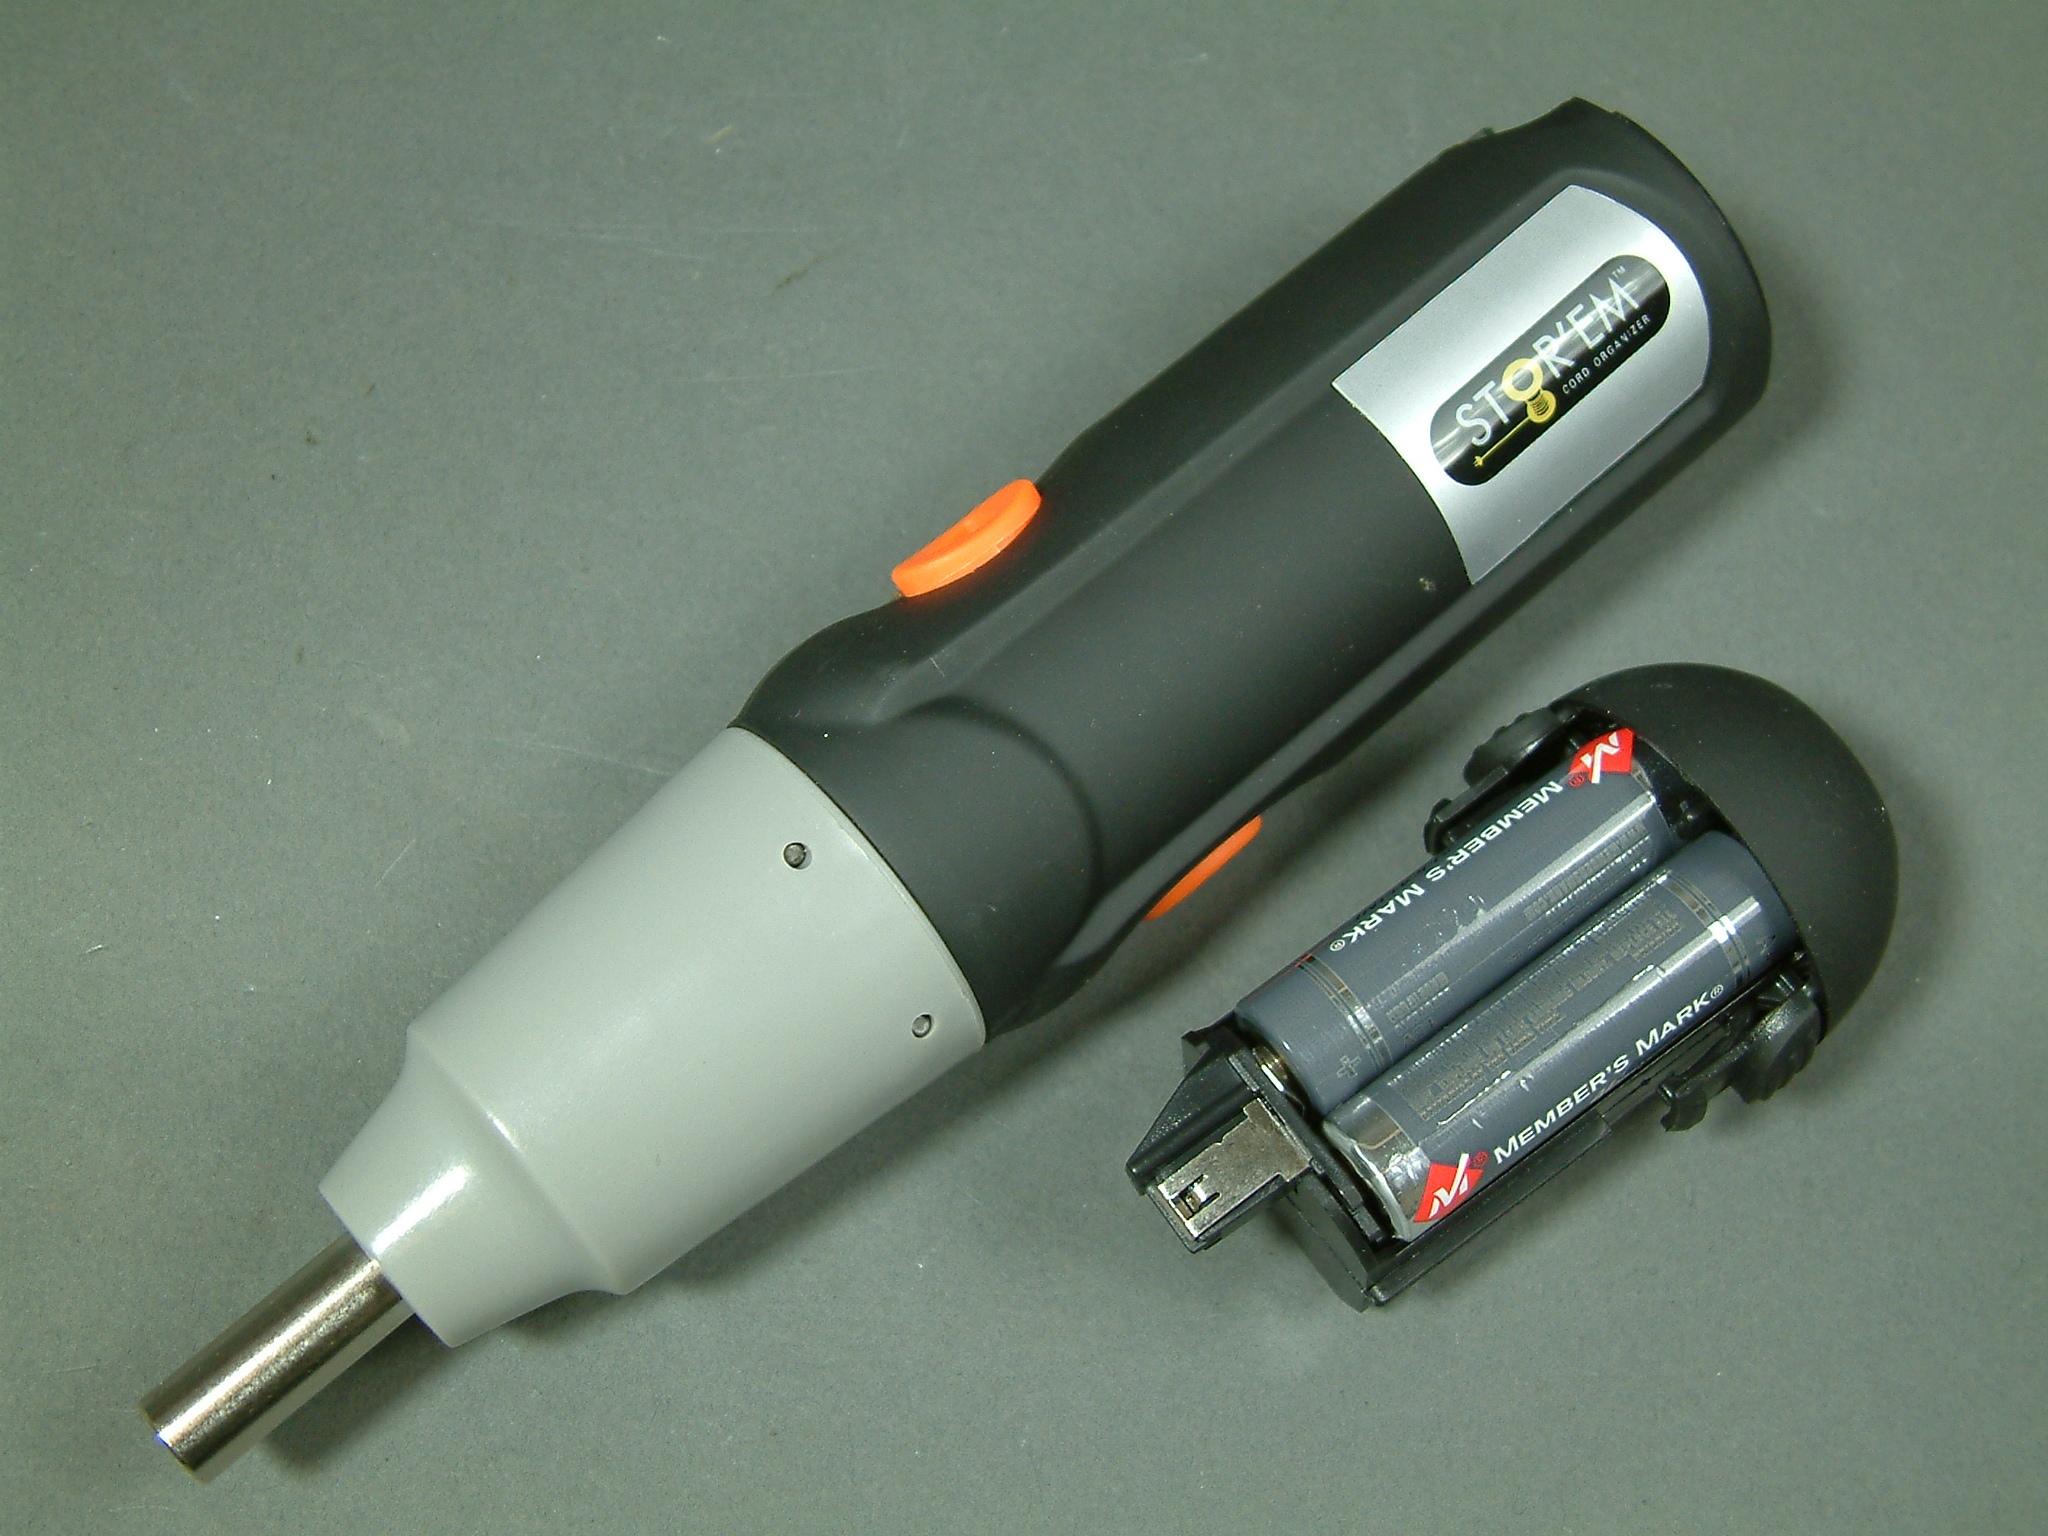 Kid Electric Car >> Cordless Electric Screw Driver 6 VDC uses standard AA's to power | Mavin the Webstore